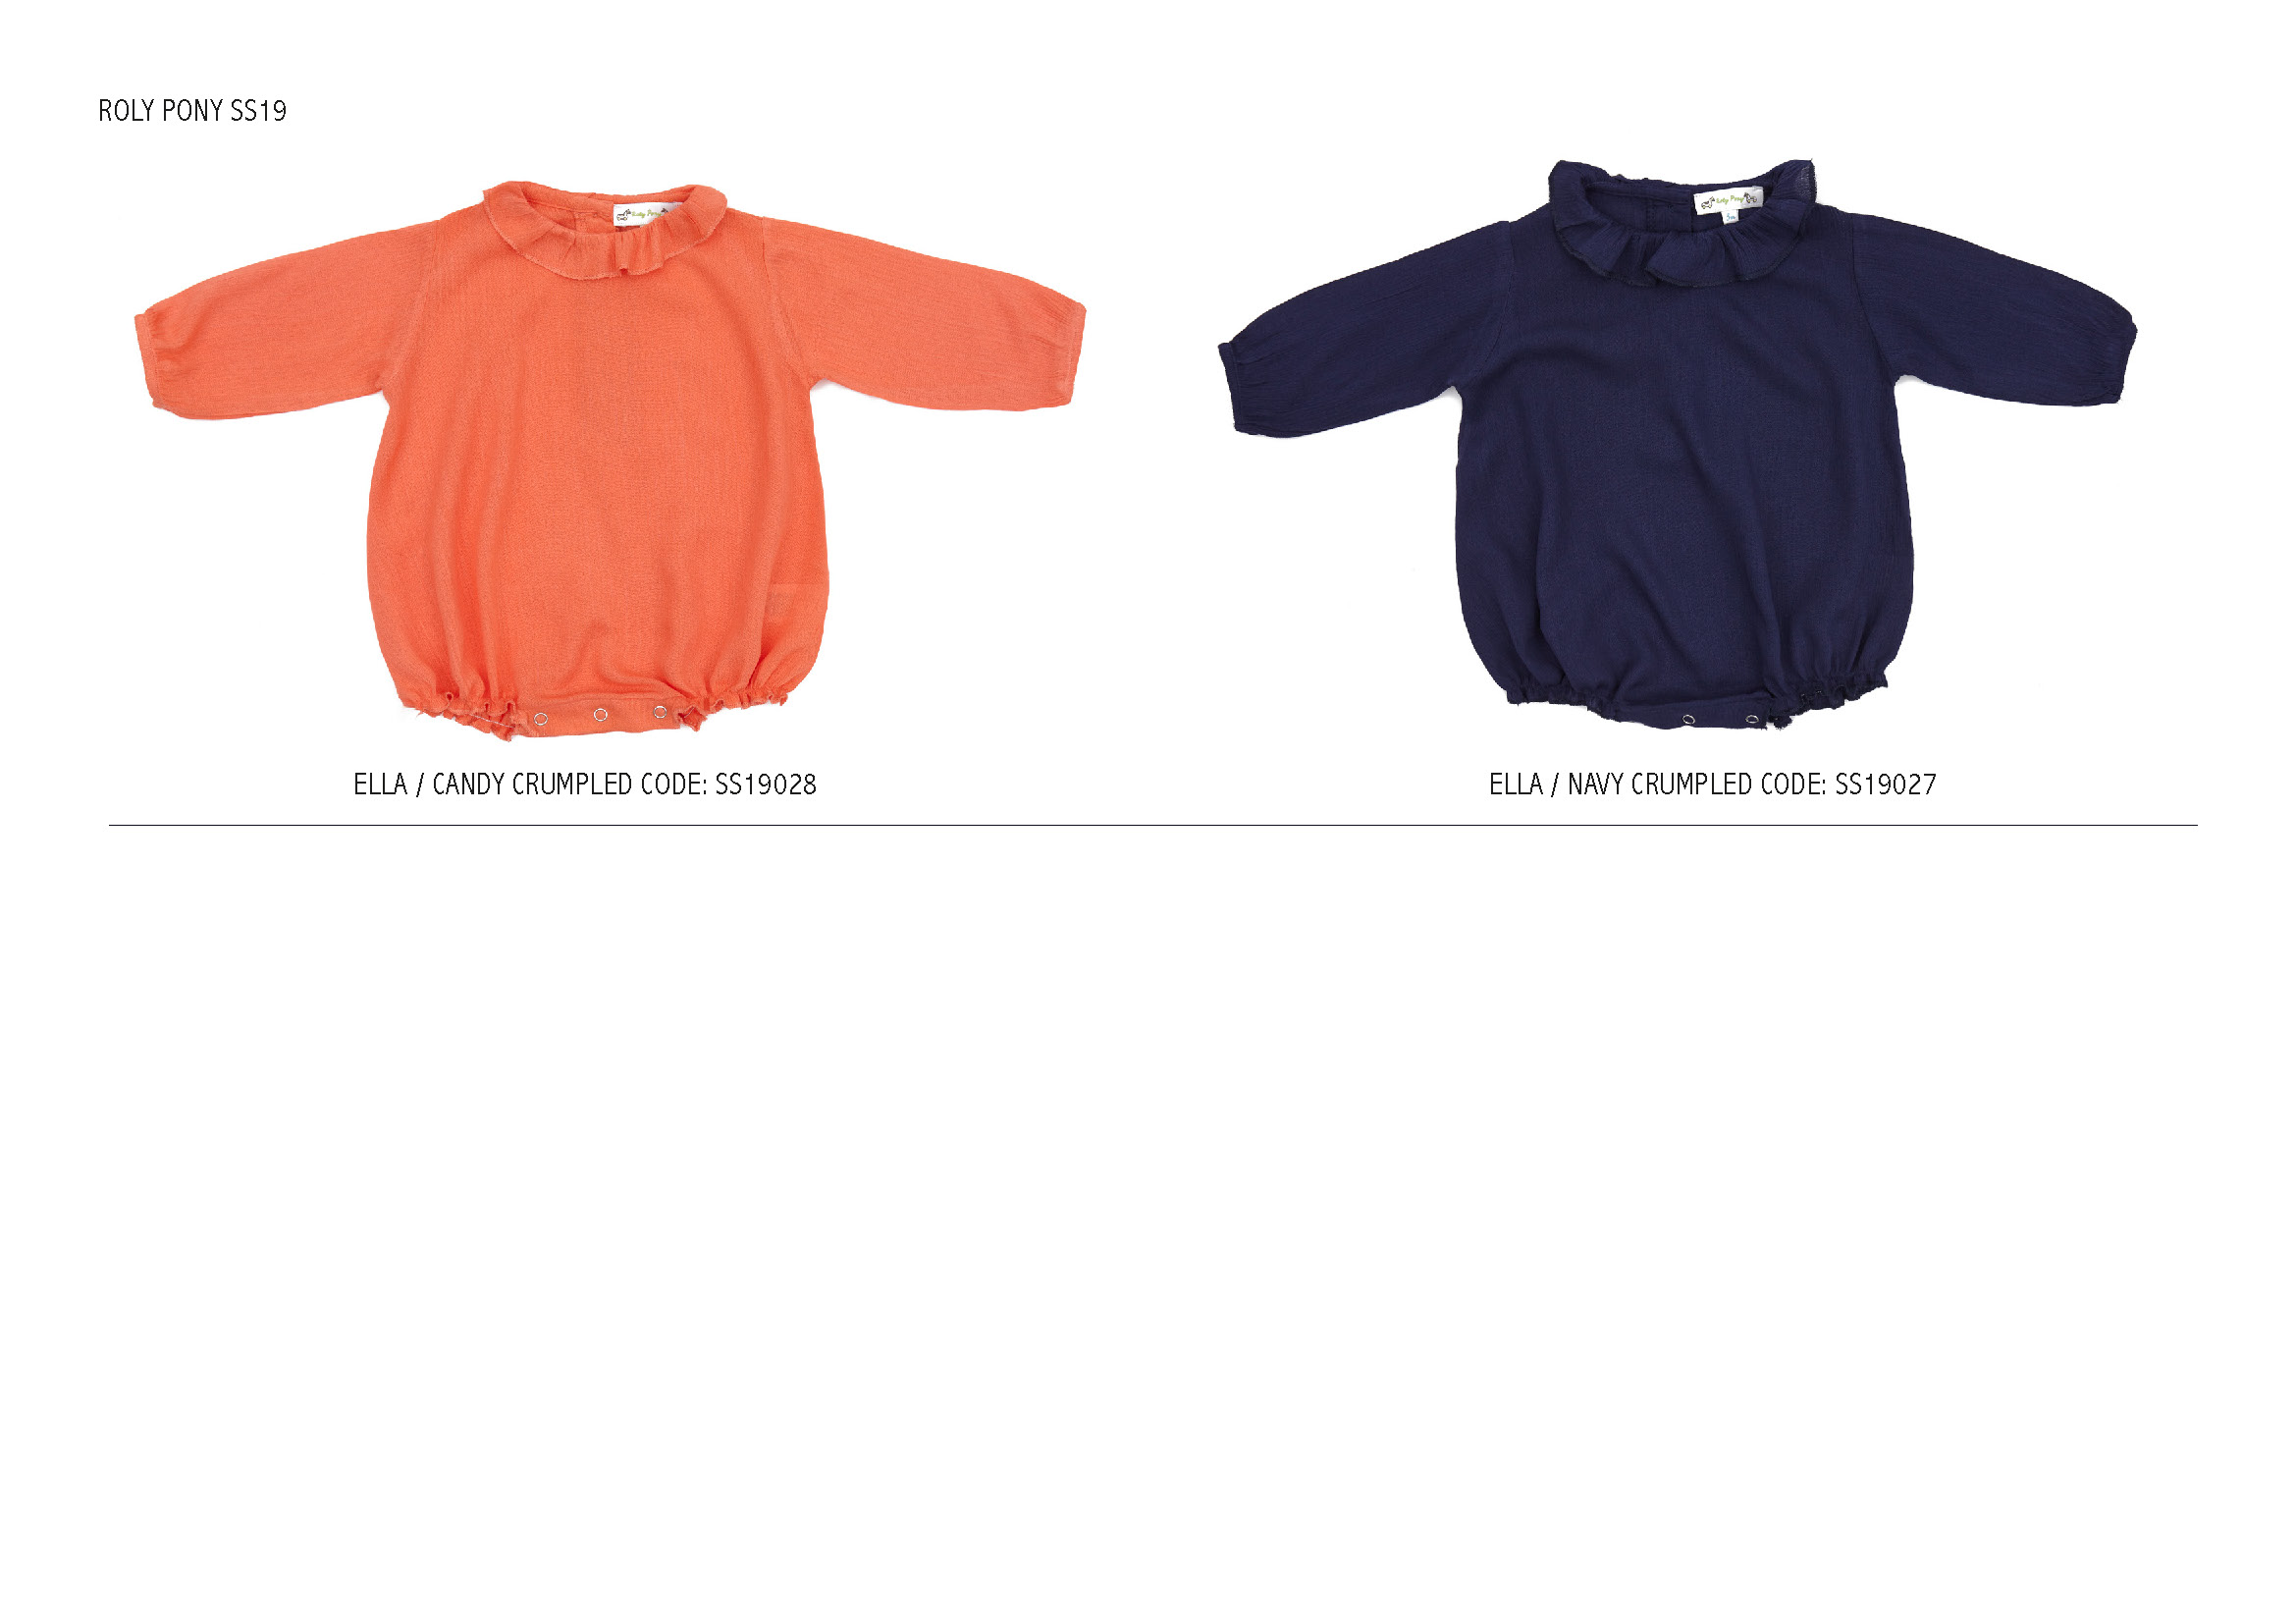 RP SS19 CATALOGUE 20 July 2018_Page_05.jpg